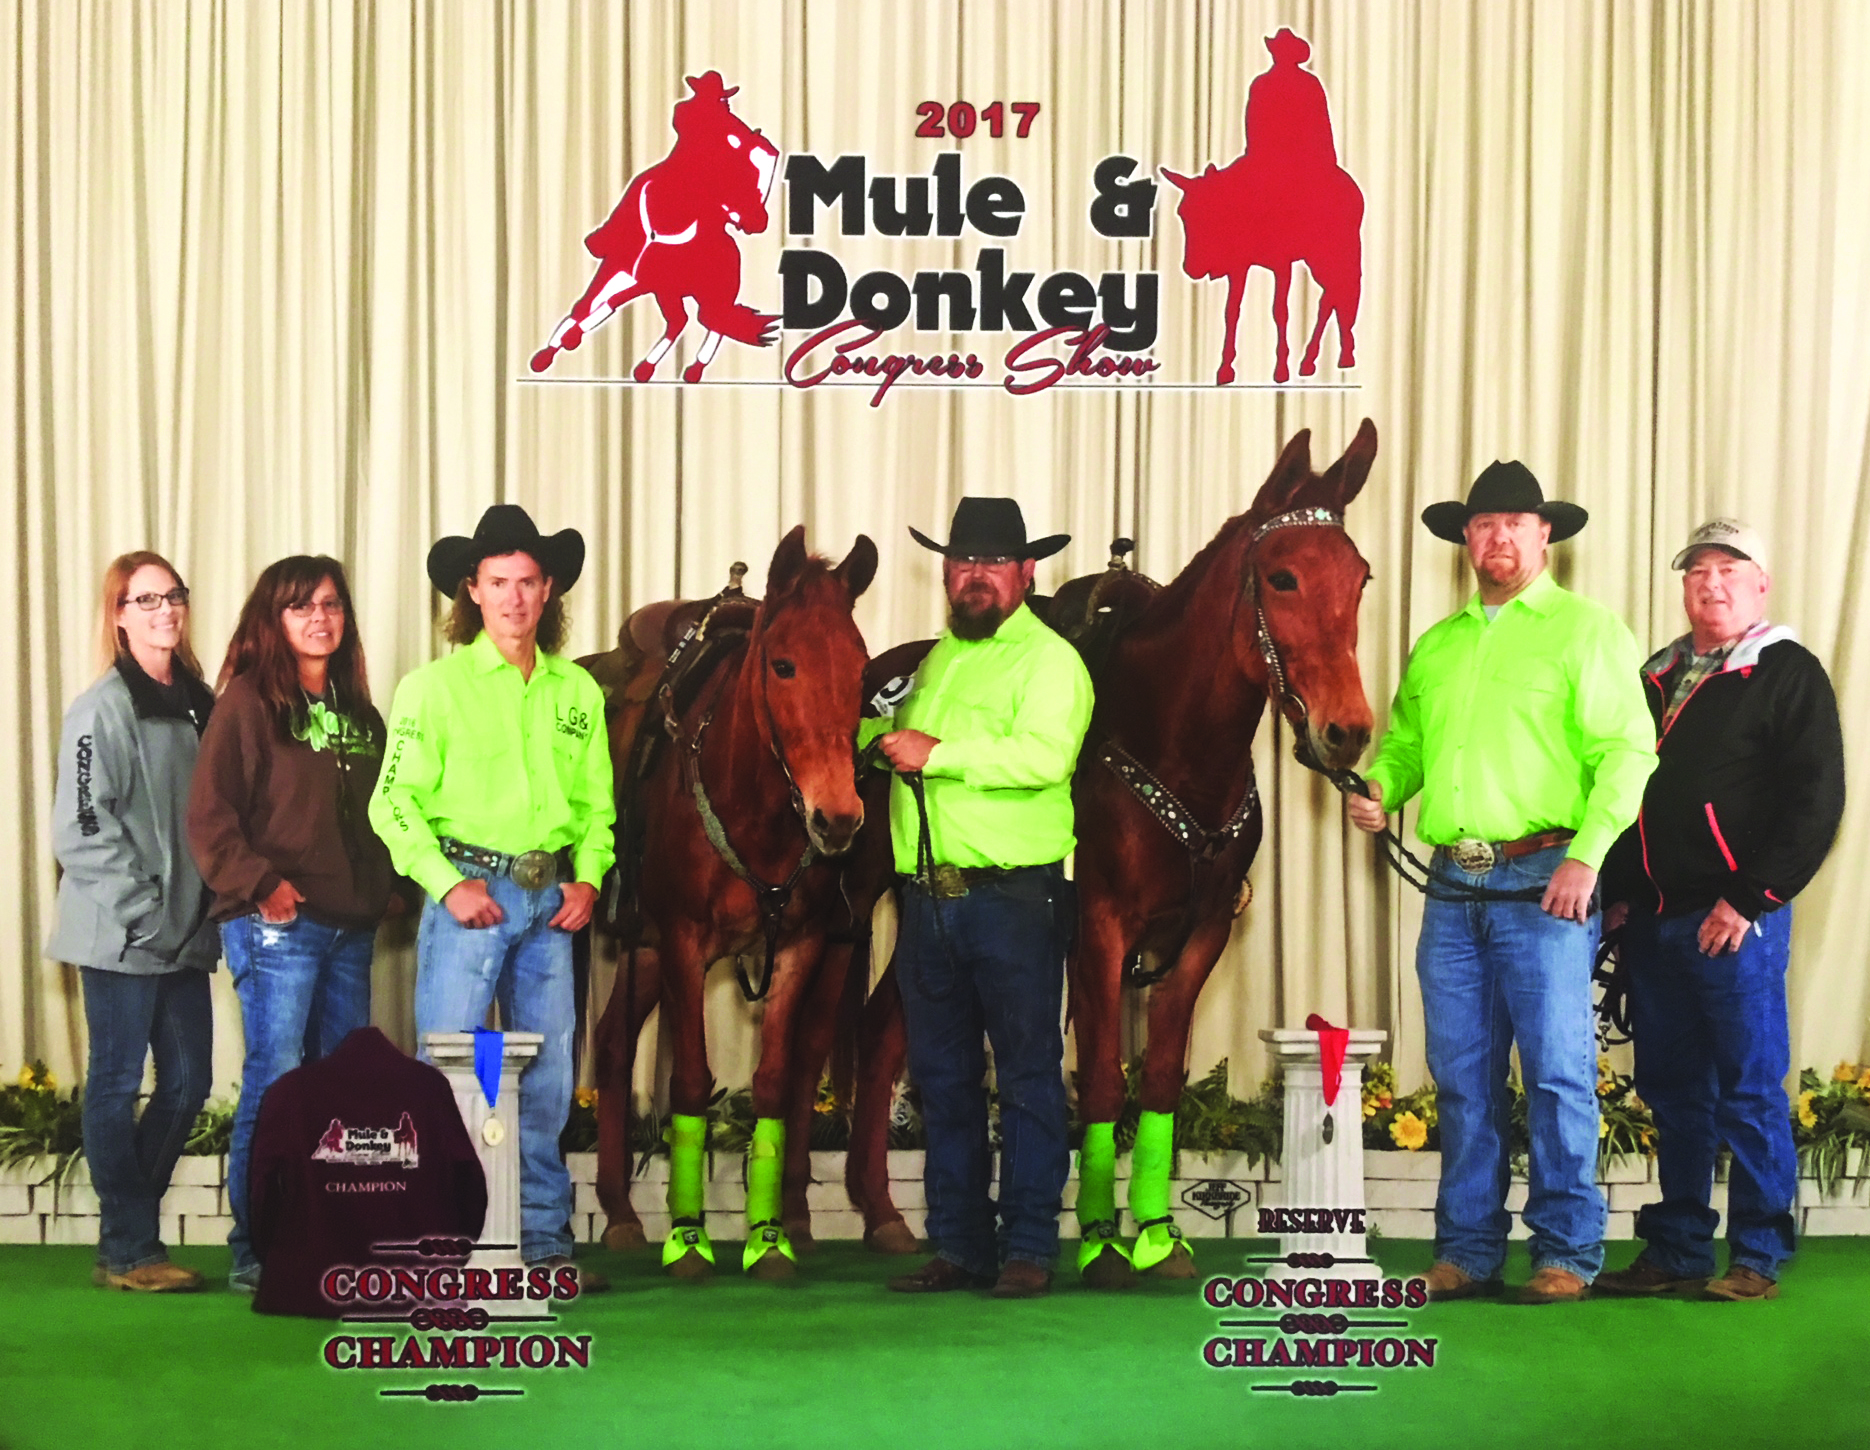 It Hawks Two and Eye Hawk Three with their 'crew' at the 2017 Mule & Donkey Con  gress